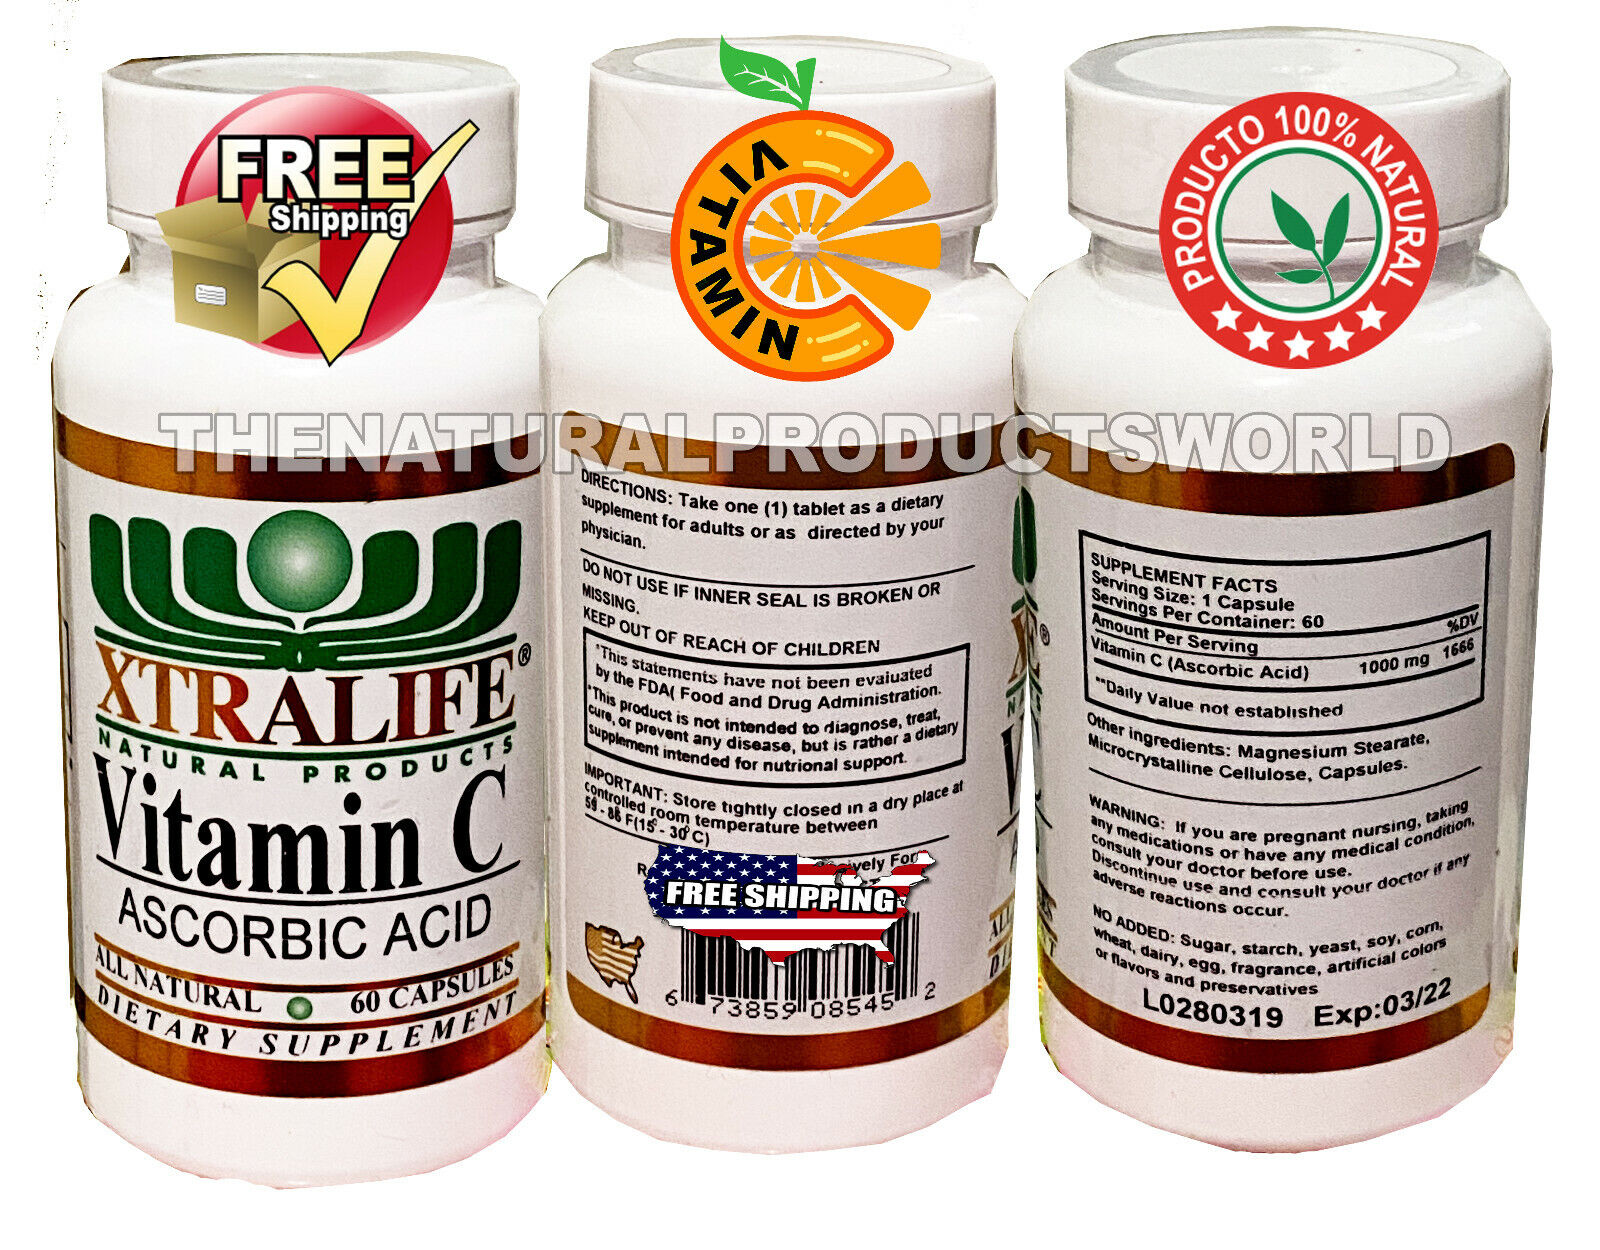 Pure Vitamin C 1,000MG Support Healthy Immune System, Antioxidant, 1 Pack 1